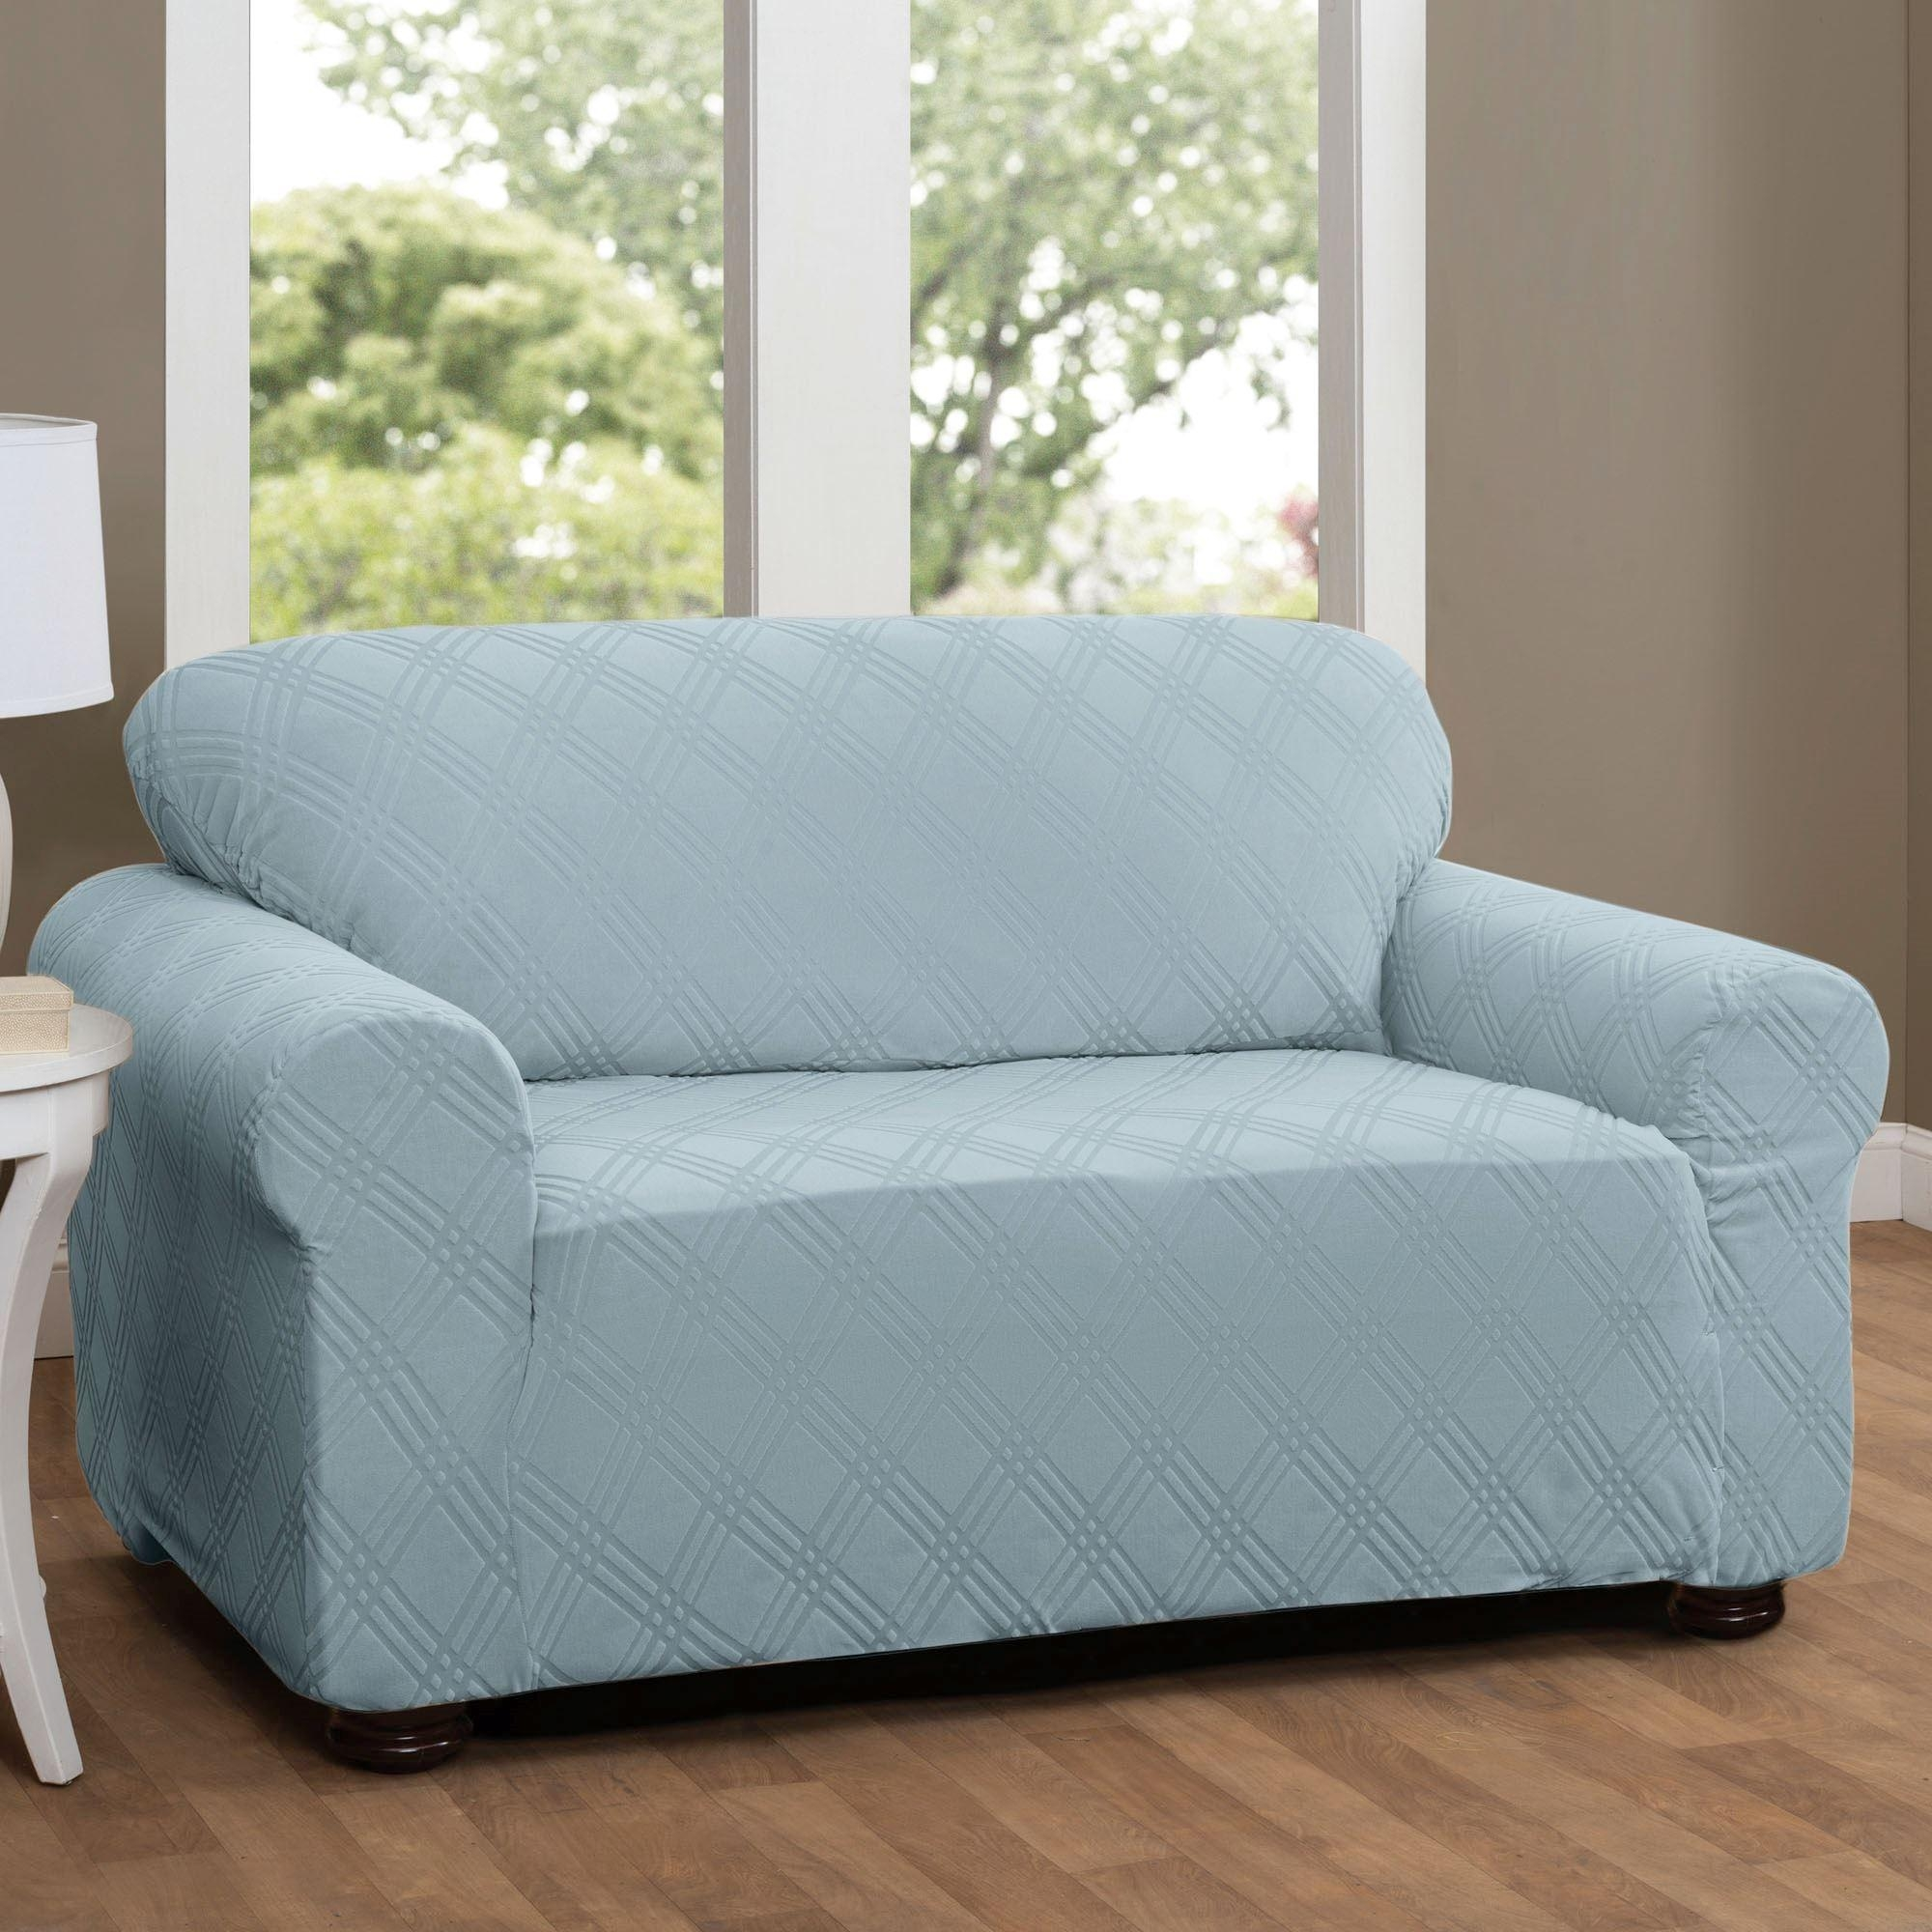 Double Diamond Stretch Loveseat Slipcovers In Stretch Slipcovers For Sofas (Image 3 of 20)